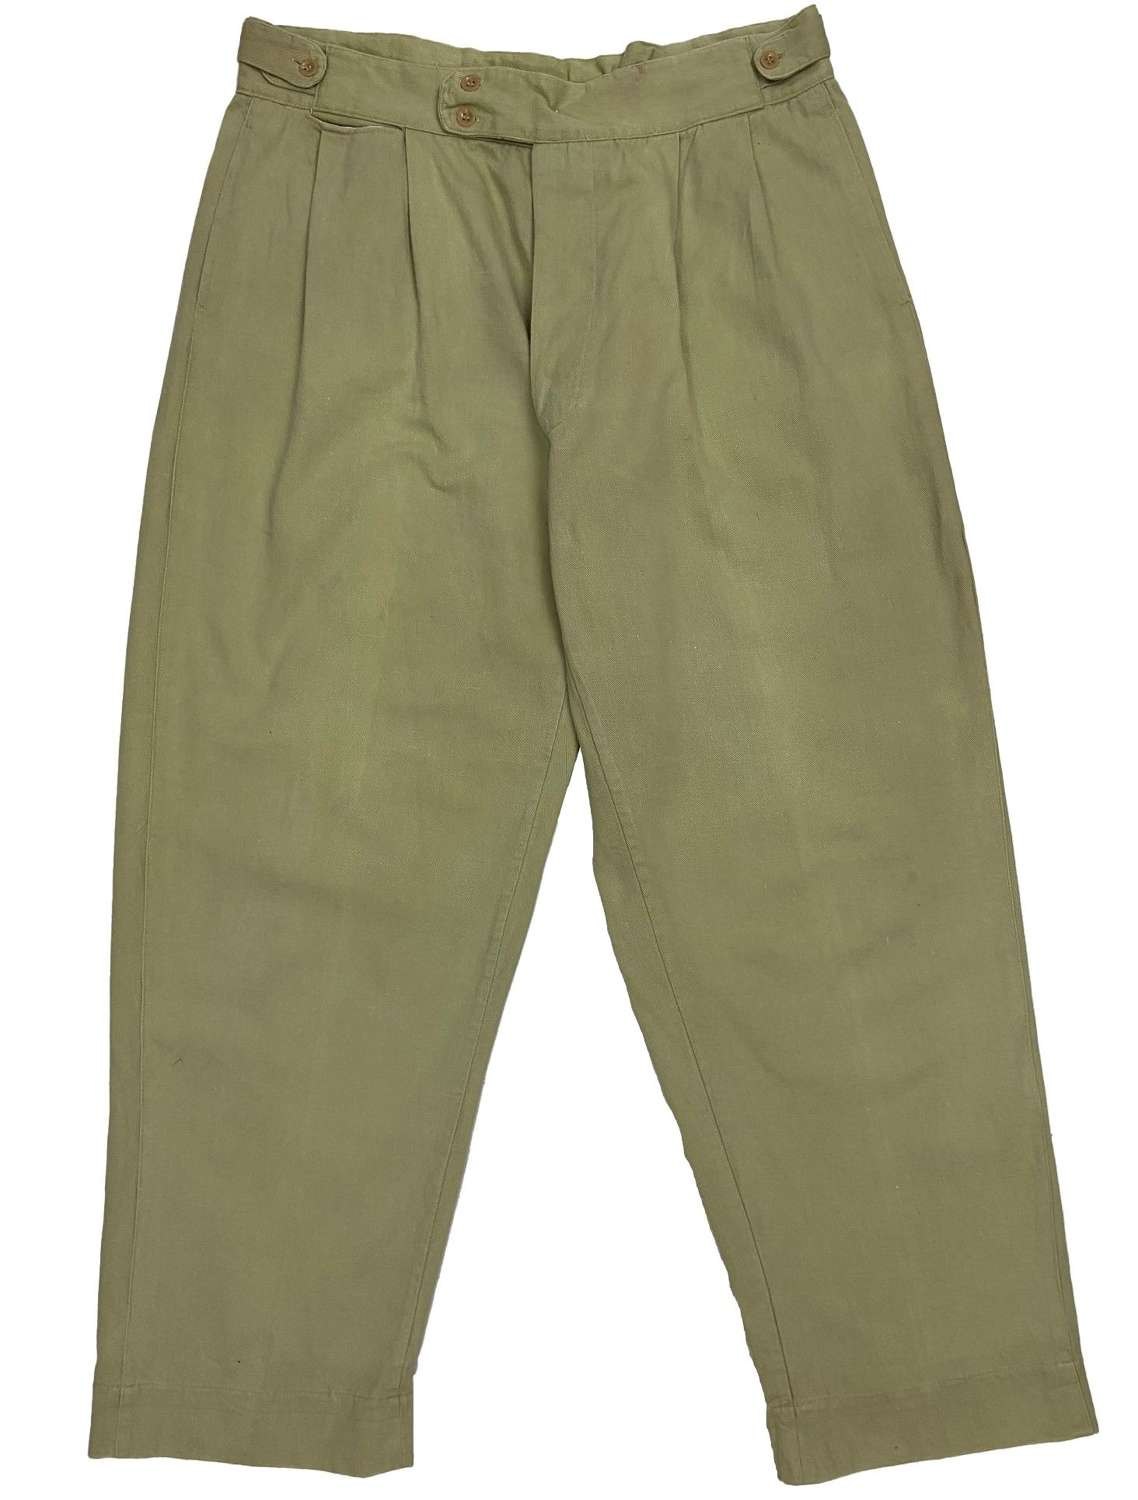 Original 1950s Men's Cotton Drill Summer Trousers by 'Selrig'